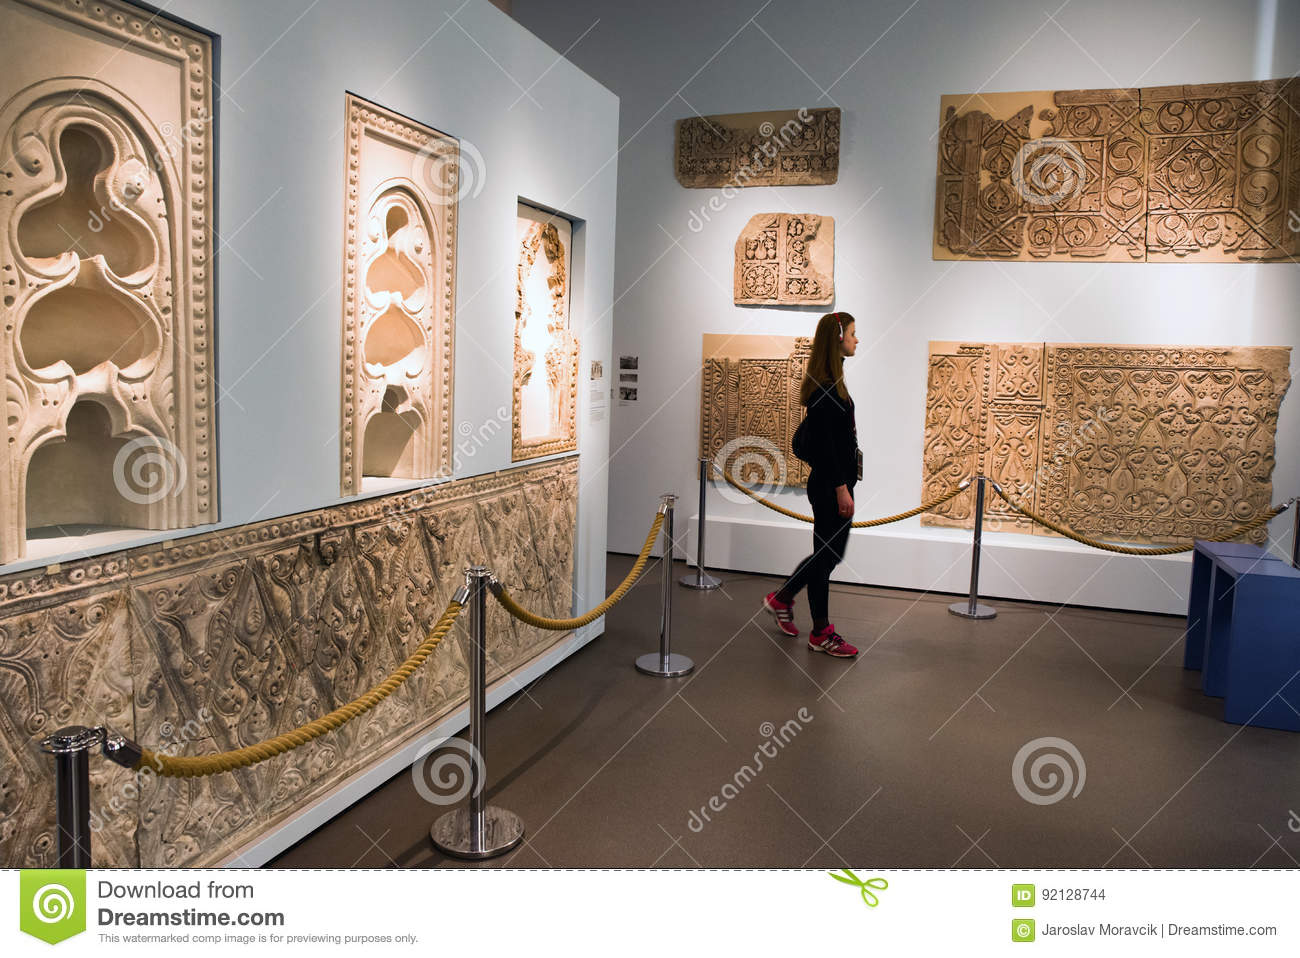 Stuckdekorationen Samarras Der Irak In Pergamon-Museum, Berlin, GE ...